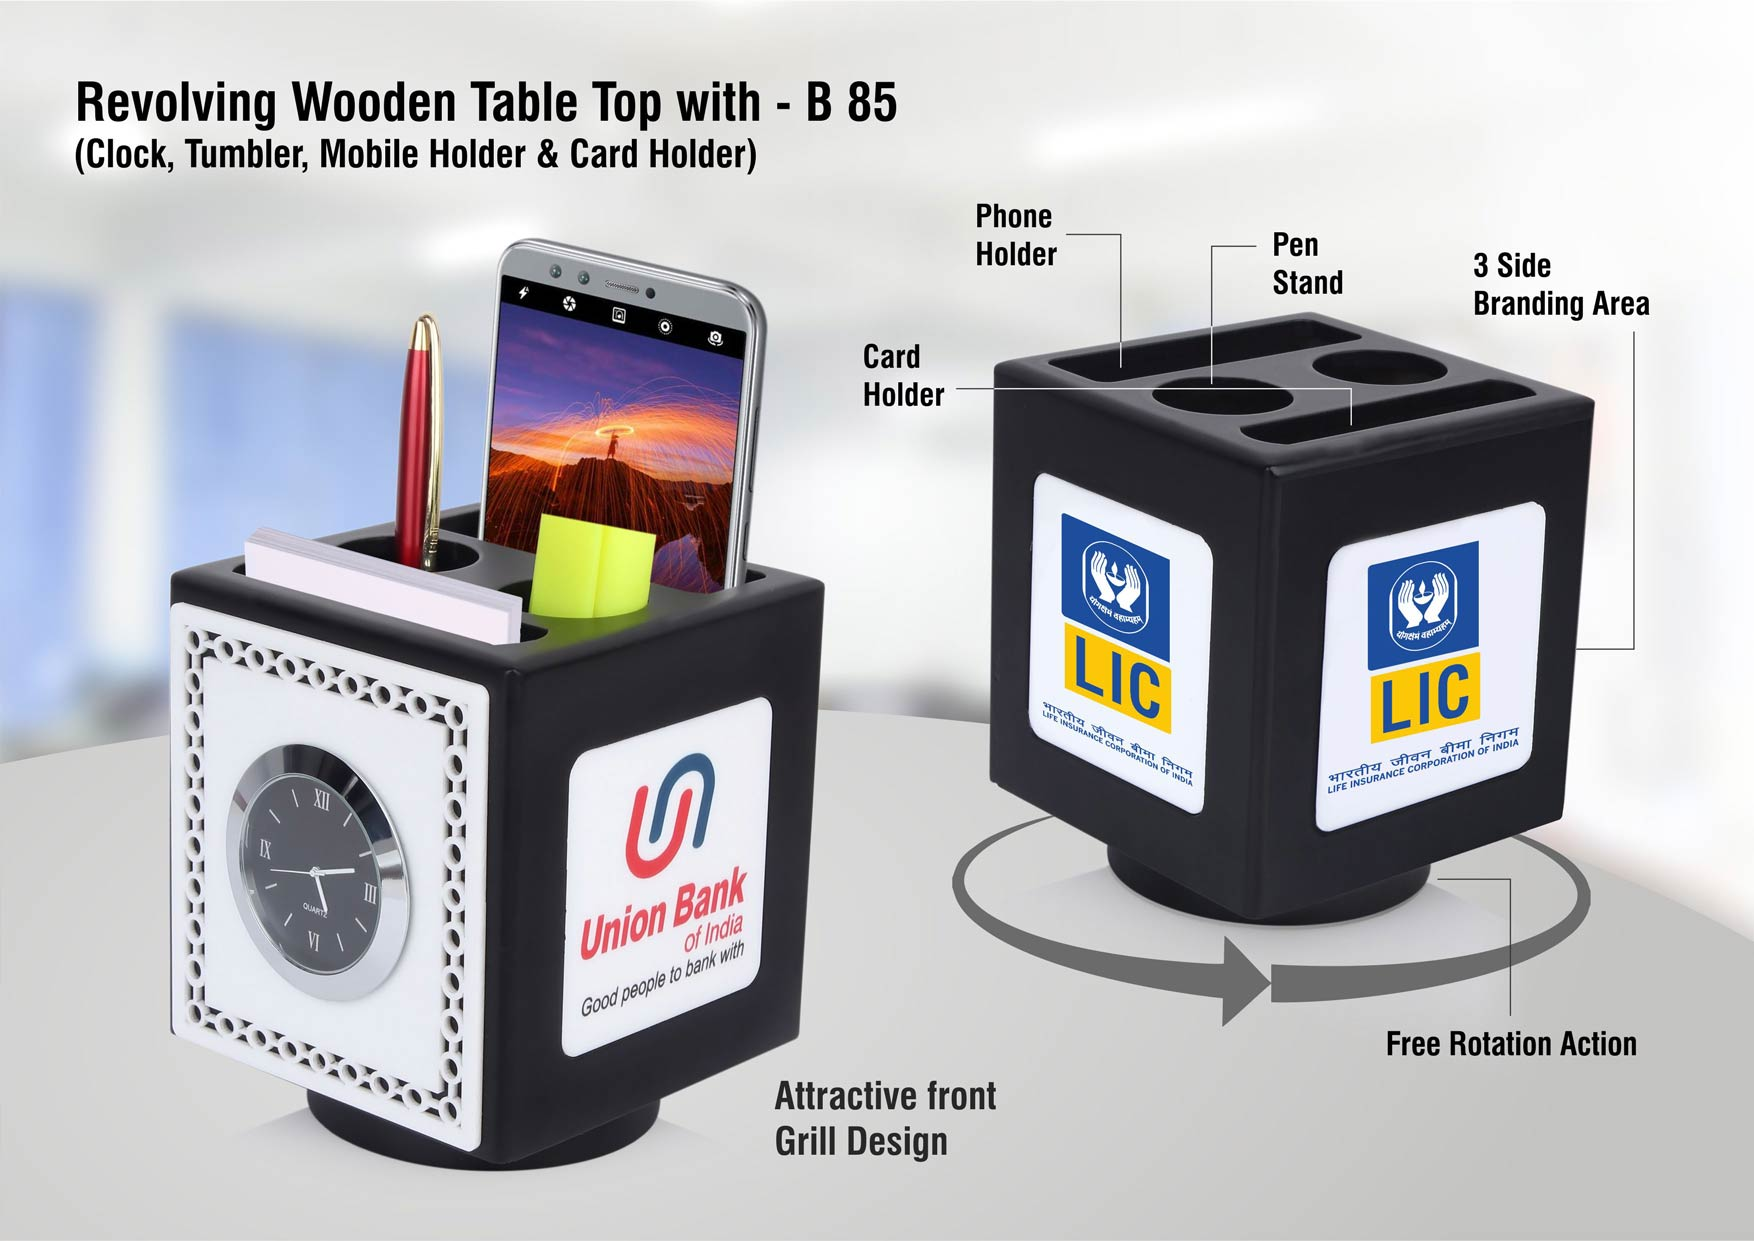 B85 - Revolving wooden table top with Clock, Tumbler, mobile holder and Card holder